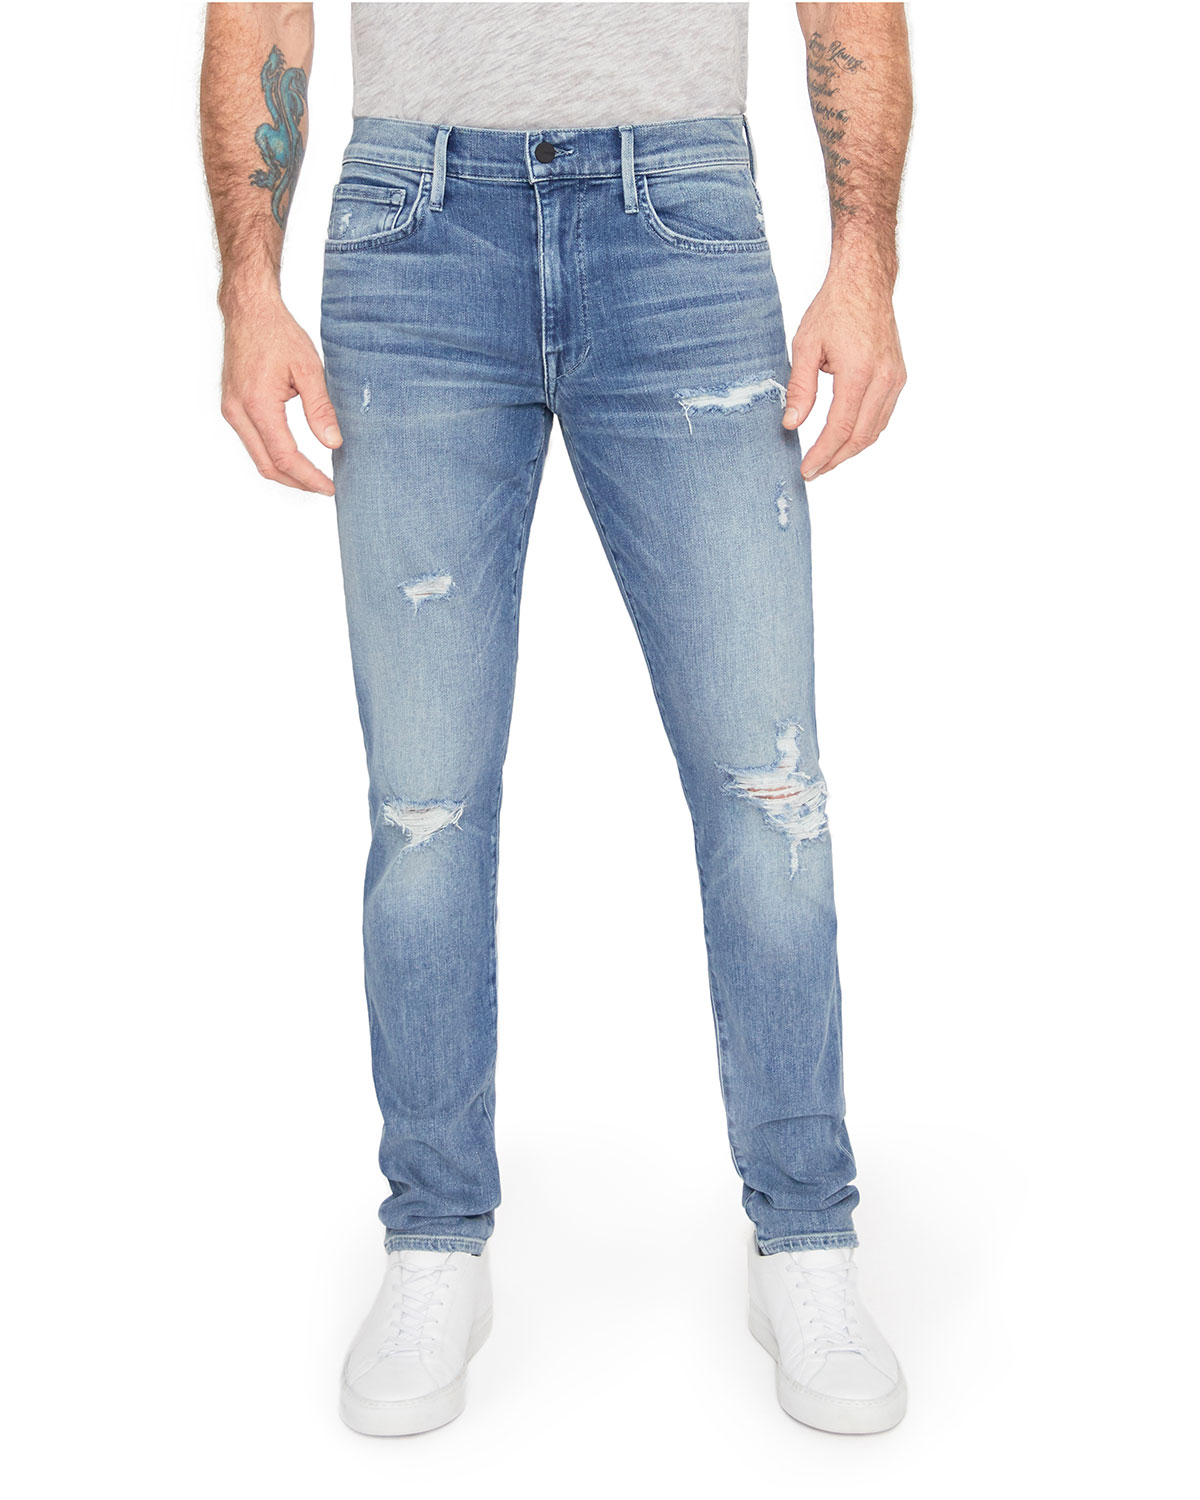 Joe's Jeans Men's The Dean Distressed Jeans - Timothy